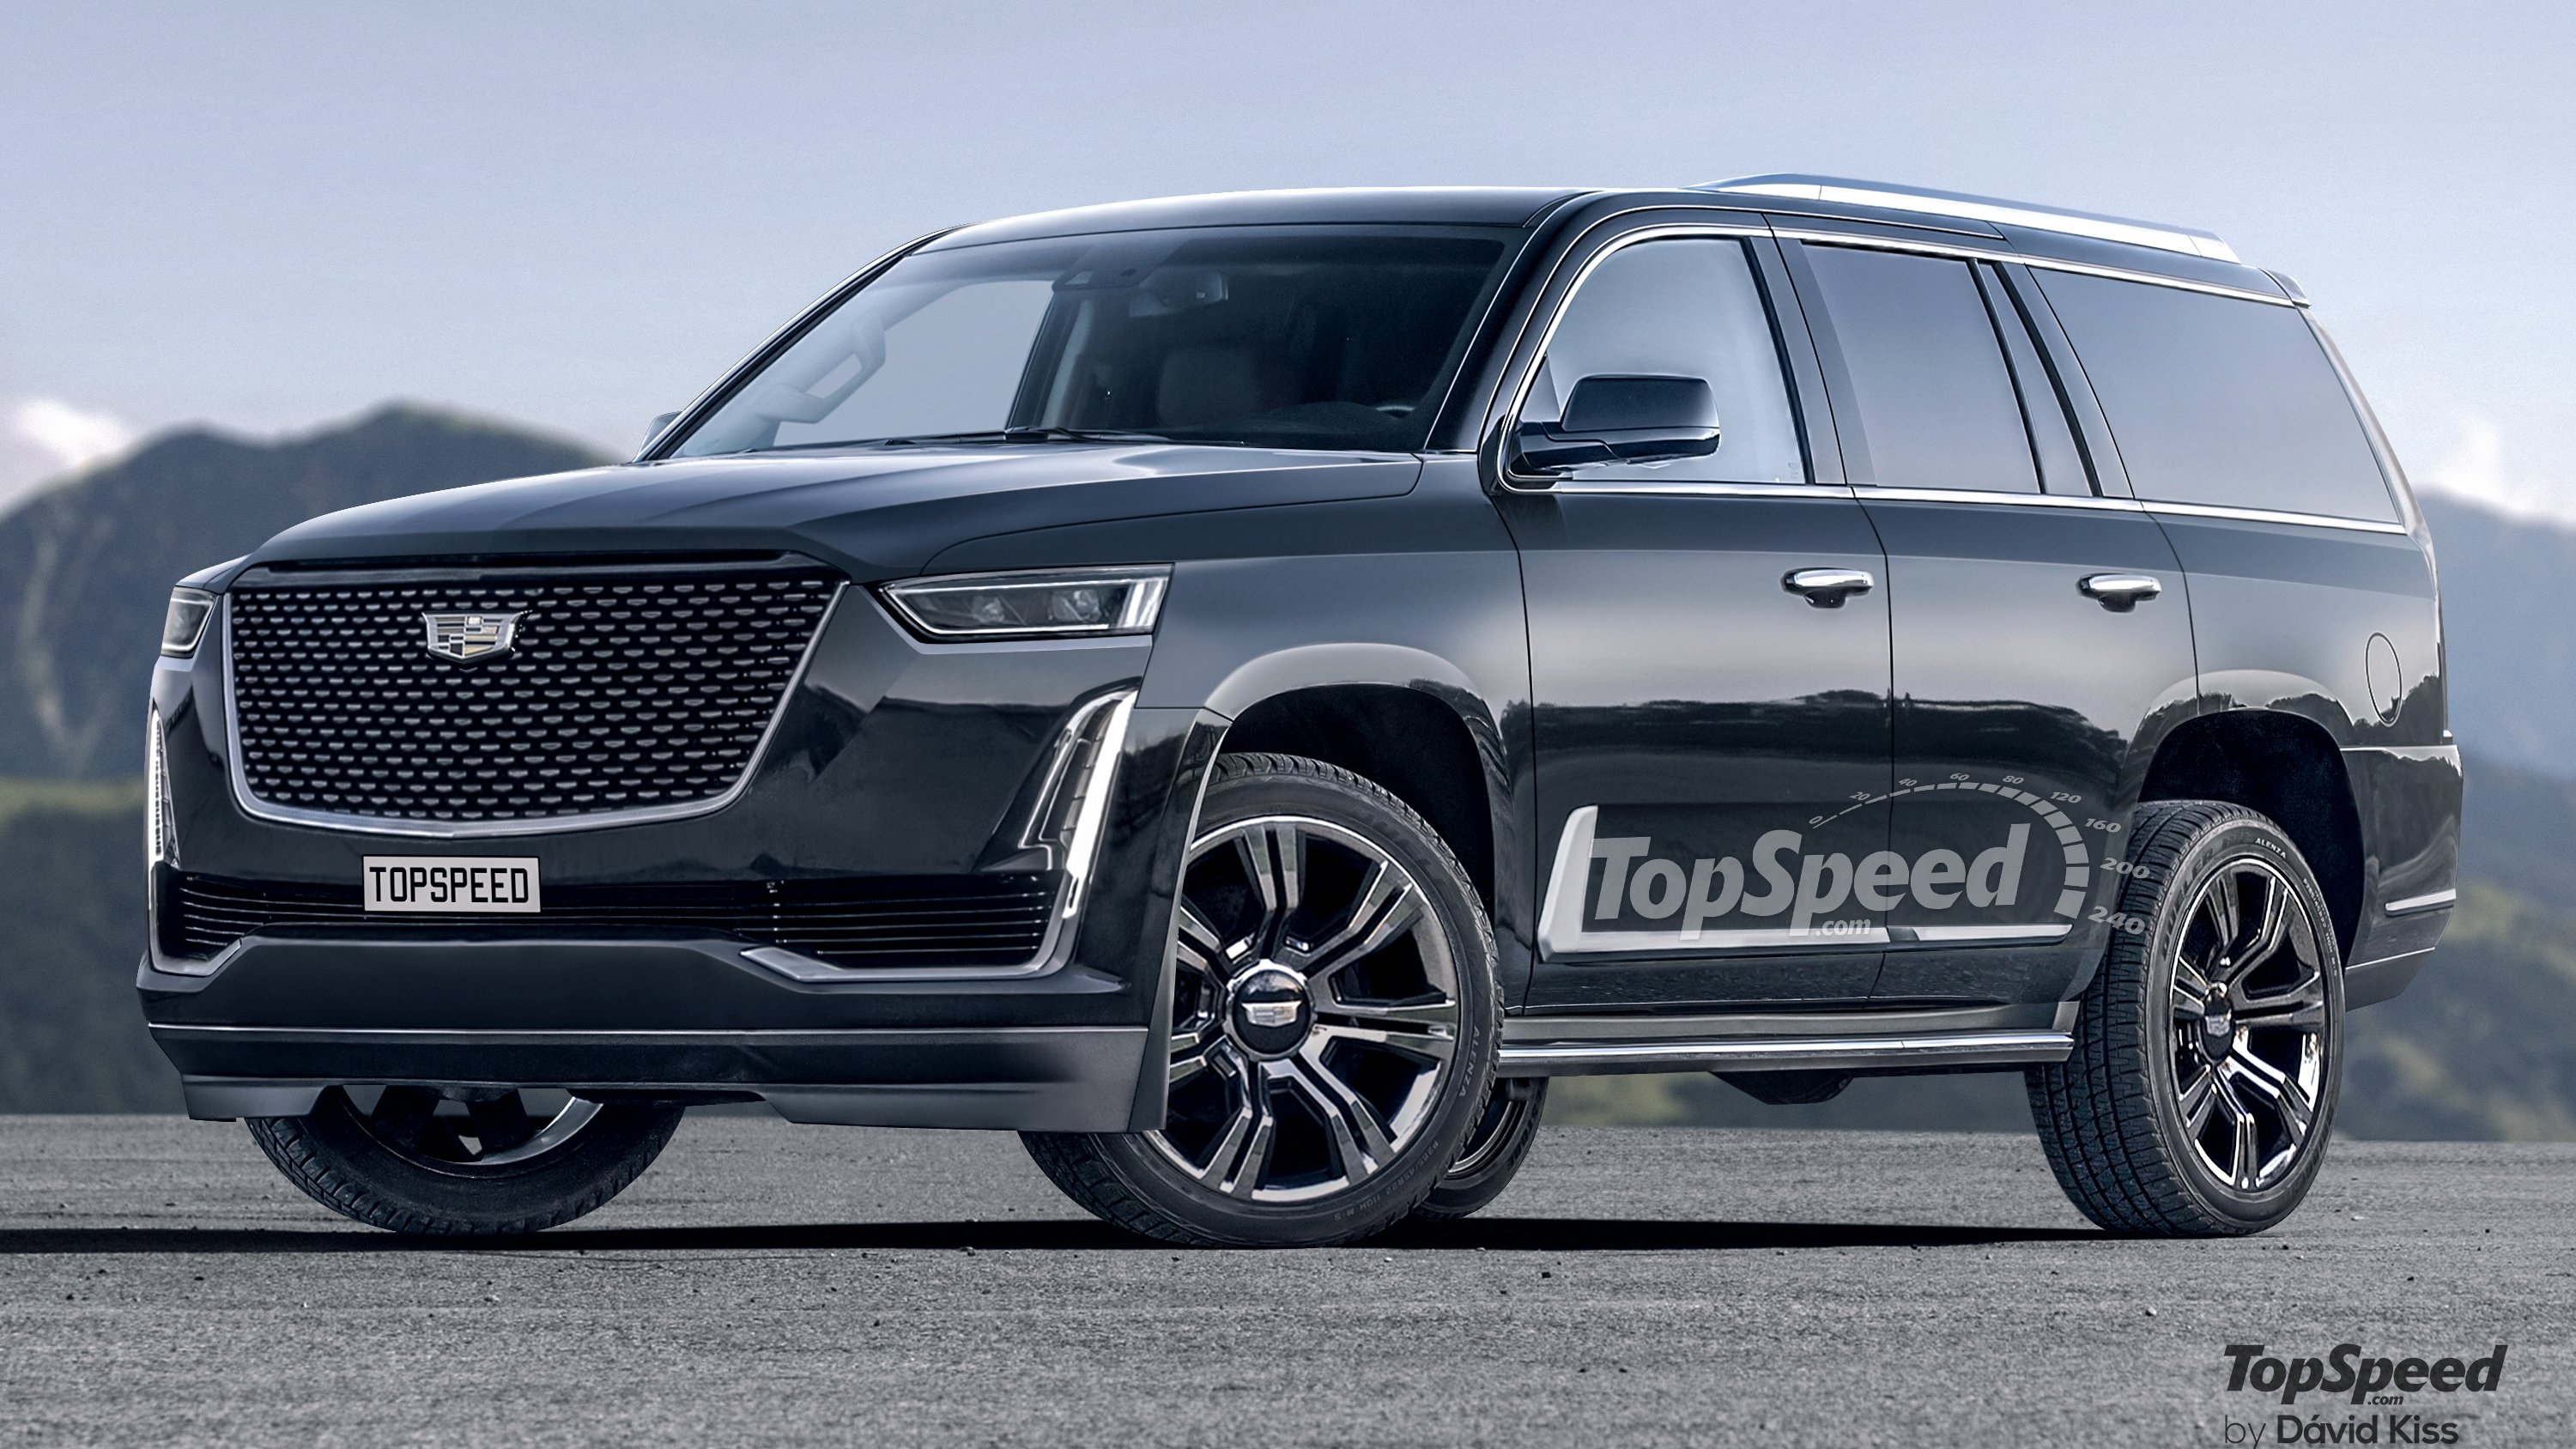 12 Great 2020 Cadillac Pickup Truck Exterior with 2020 Cadillac Pickup Truck